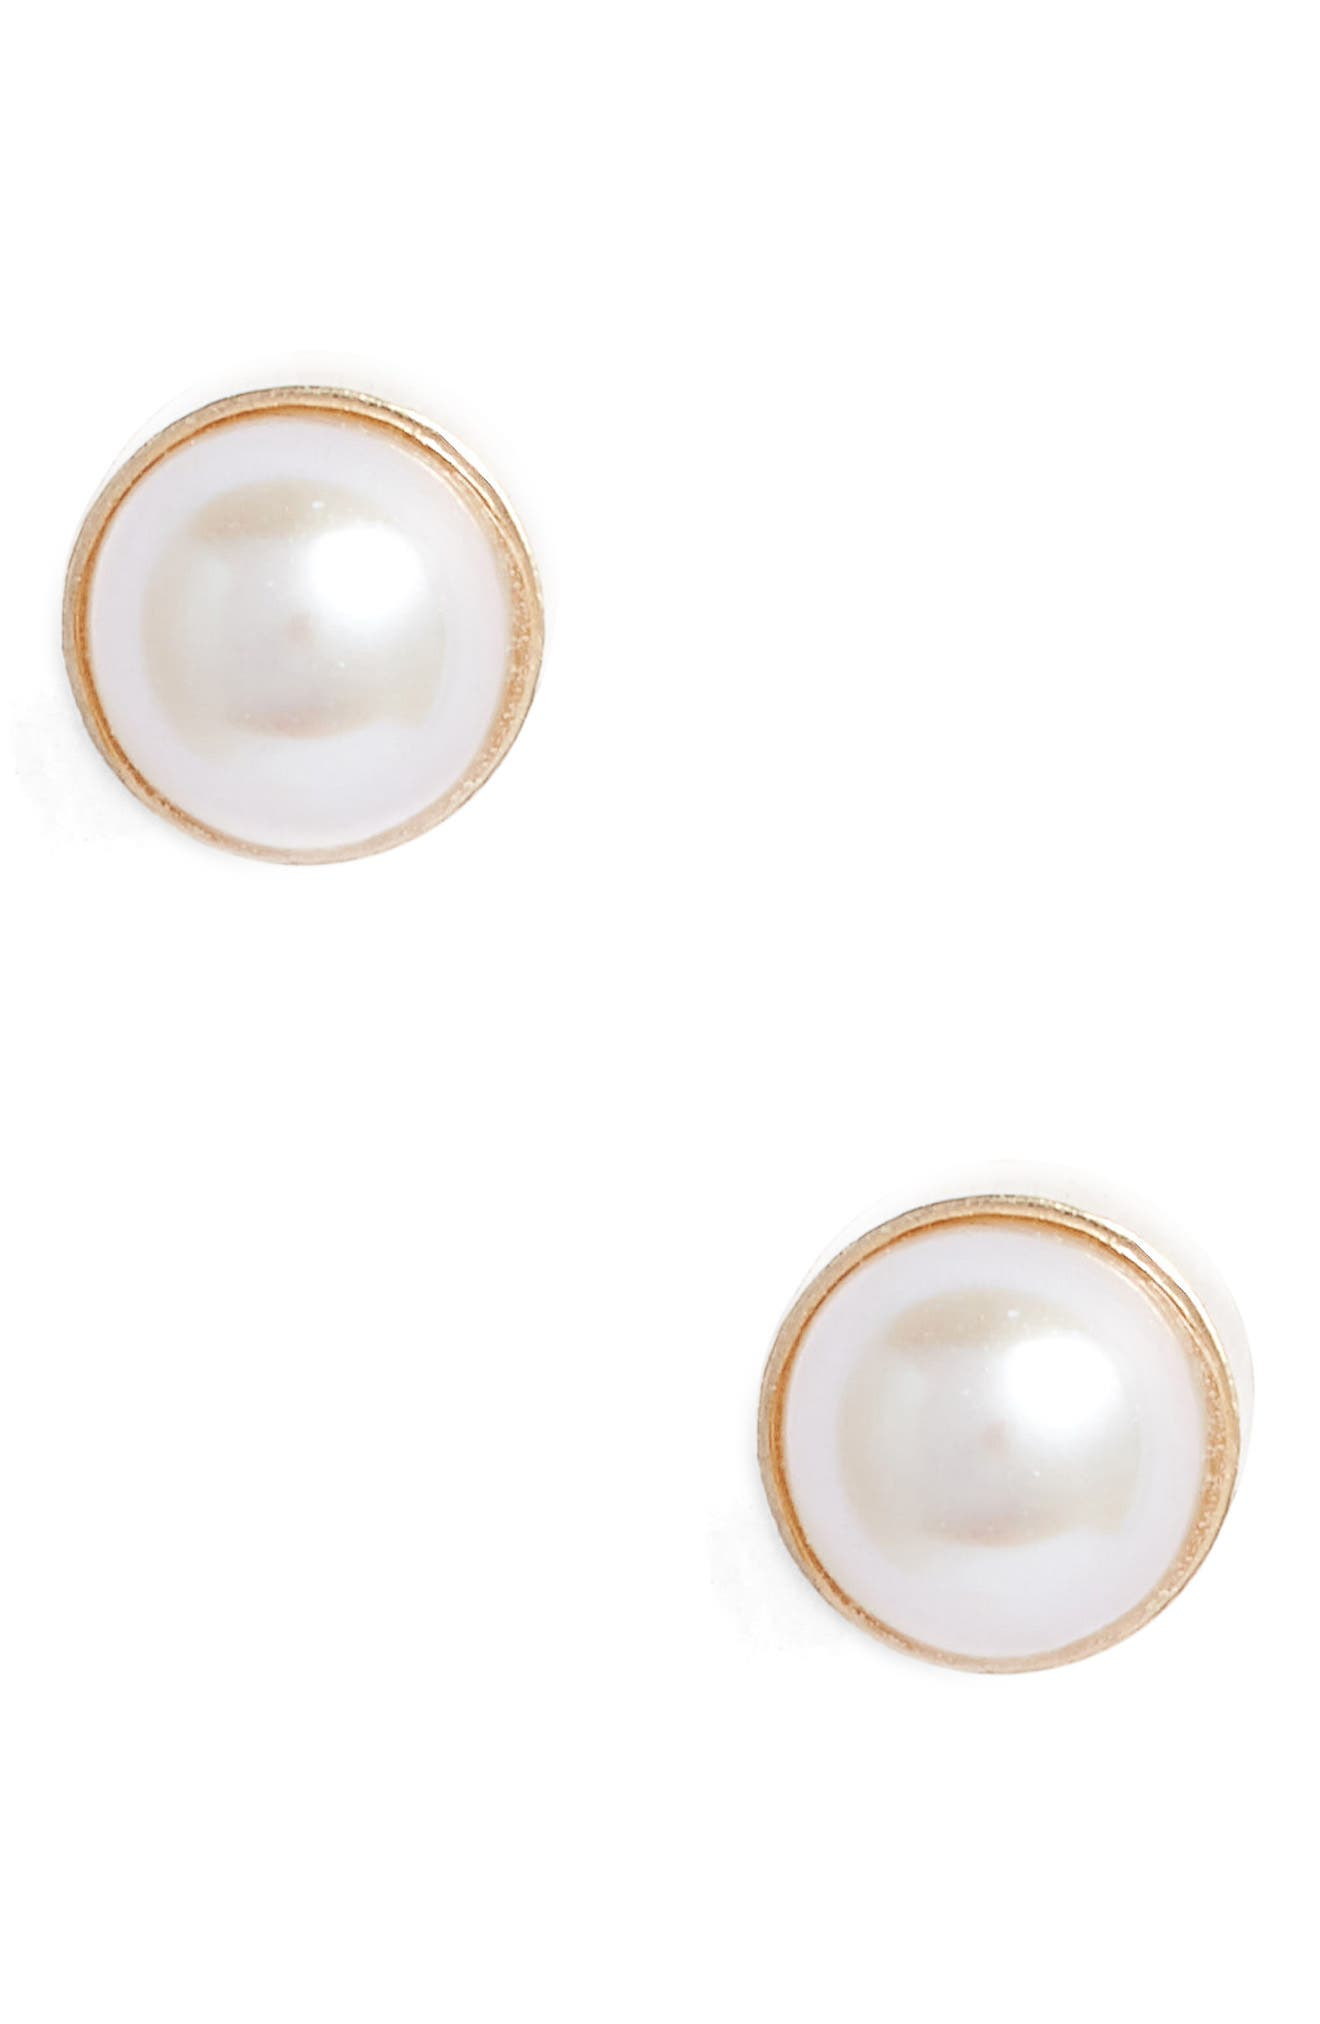 Poppy Finch Baby Pearl Bezel Stud Earrings